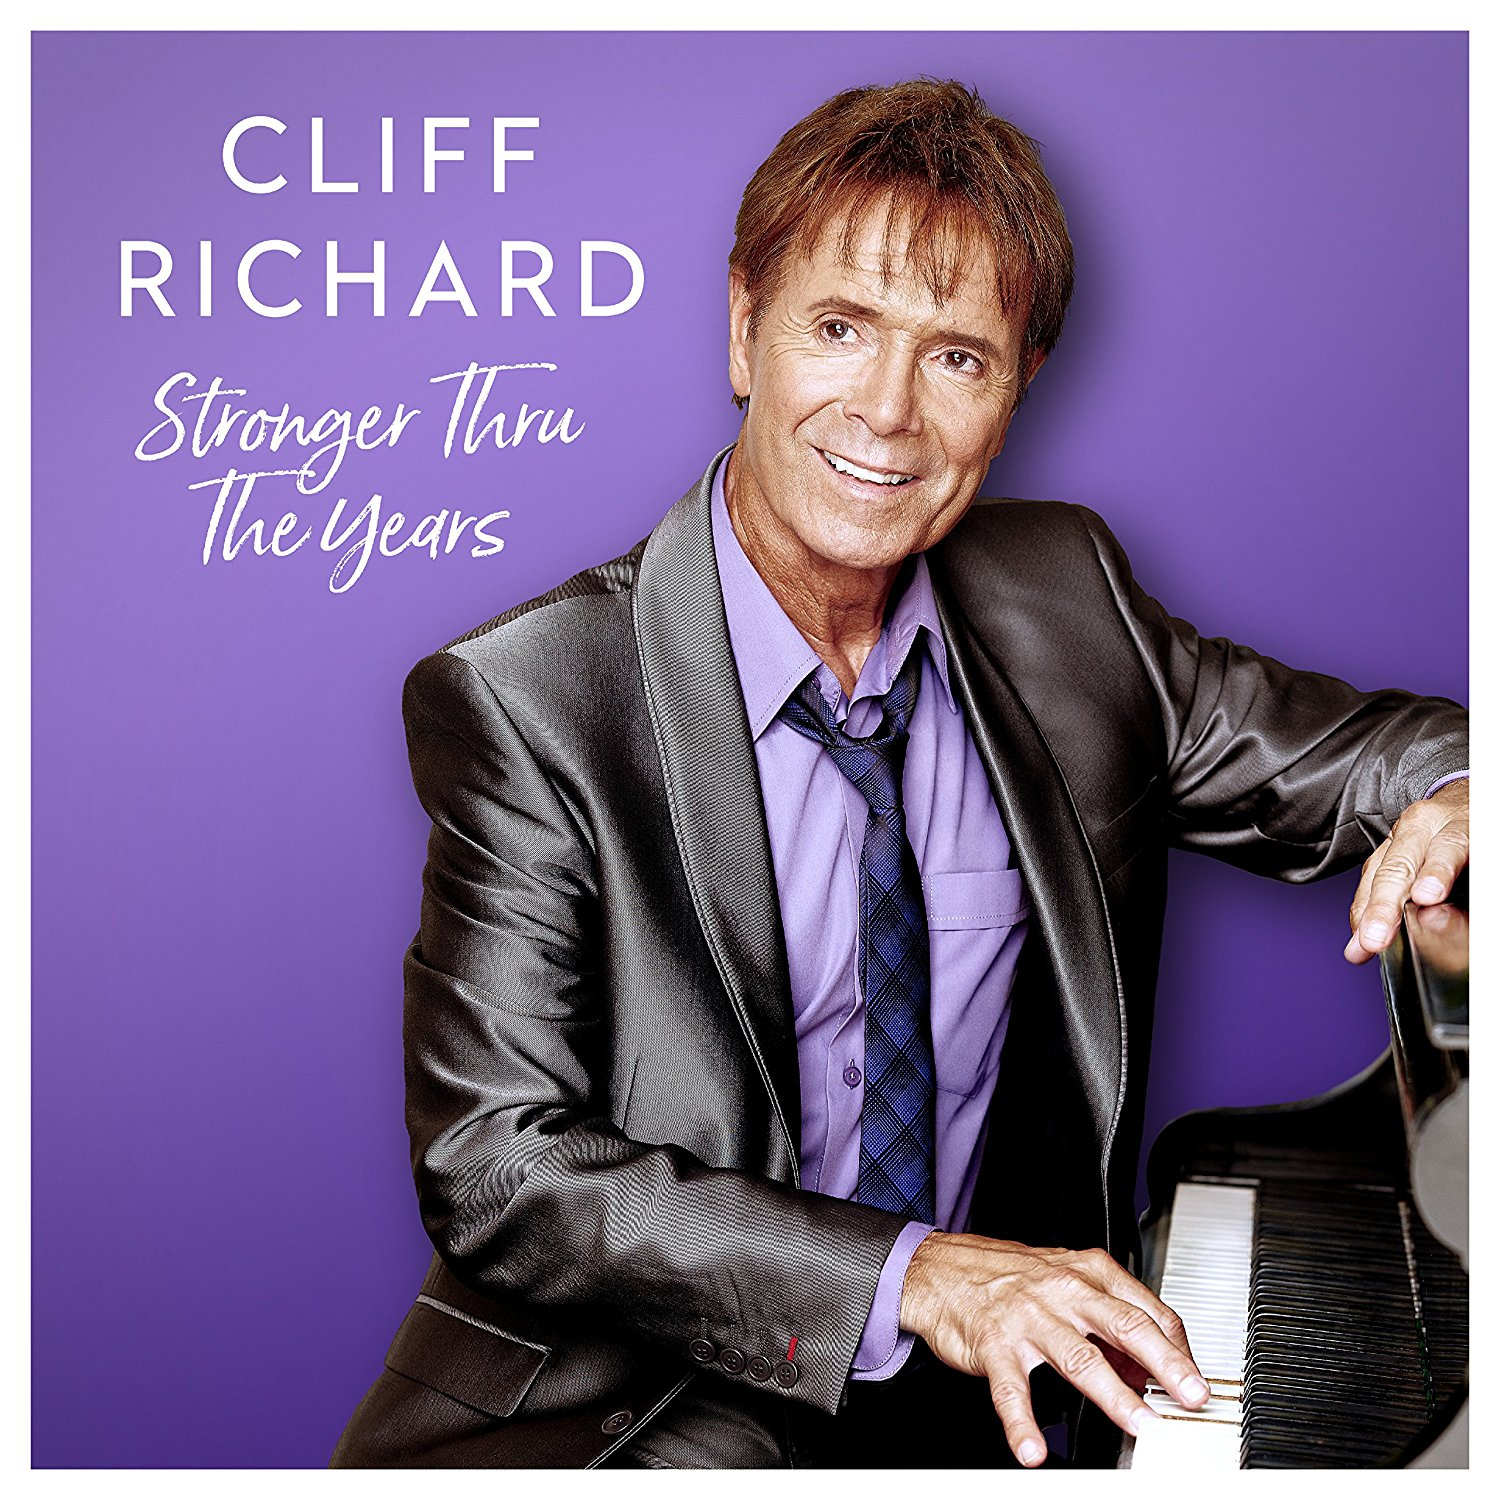 Cliff Richard - Stronger Thru The Years compilation